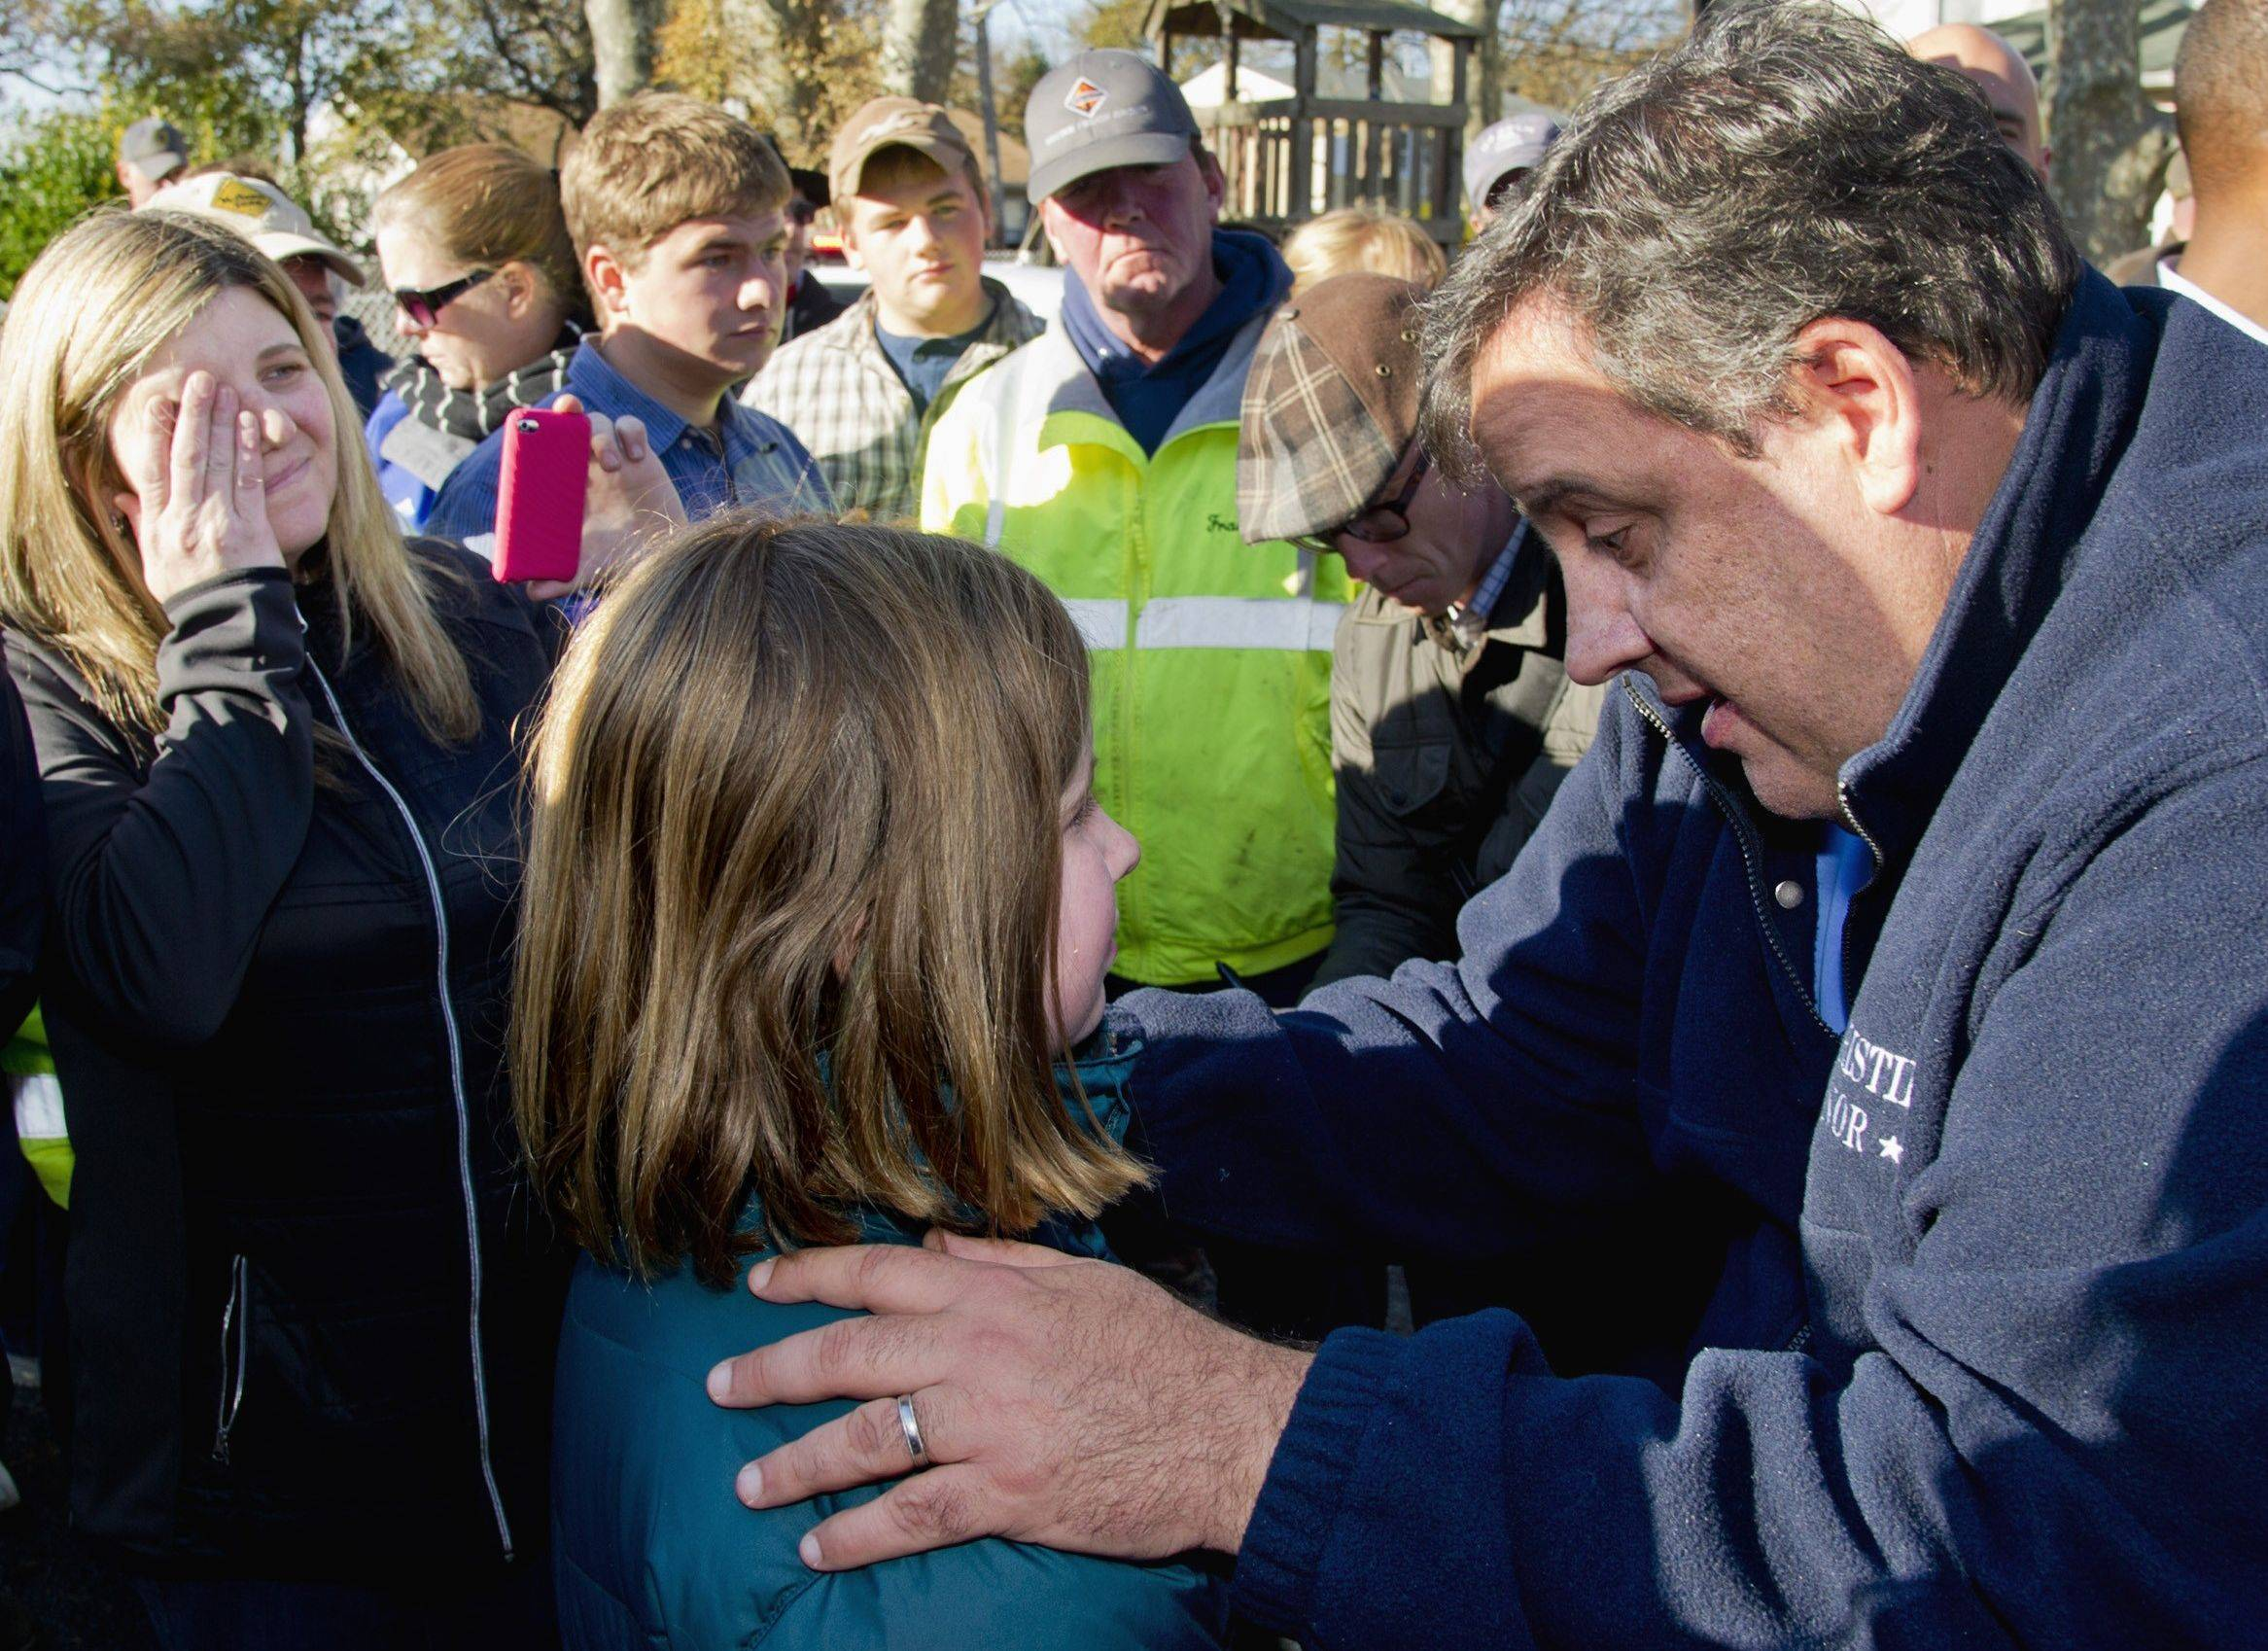 New Jersey Gov. Chris Christie gives 9-year-old Ginjer Doherty a pep talk outside in Port Monmouth, N.J., where he vis